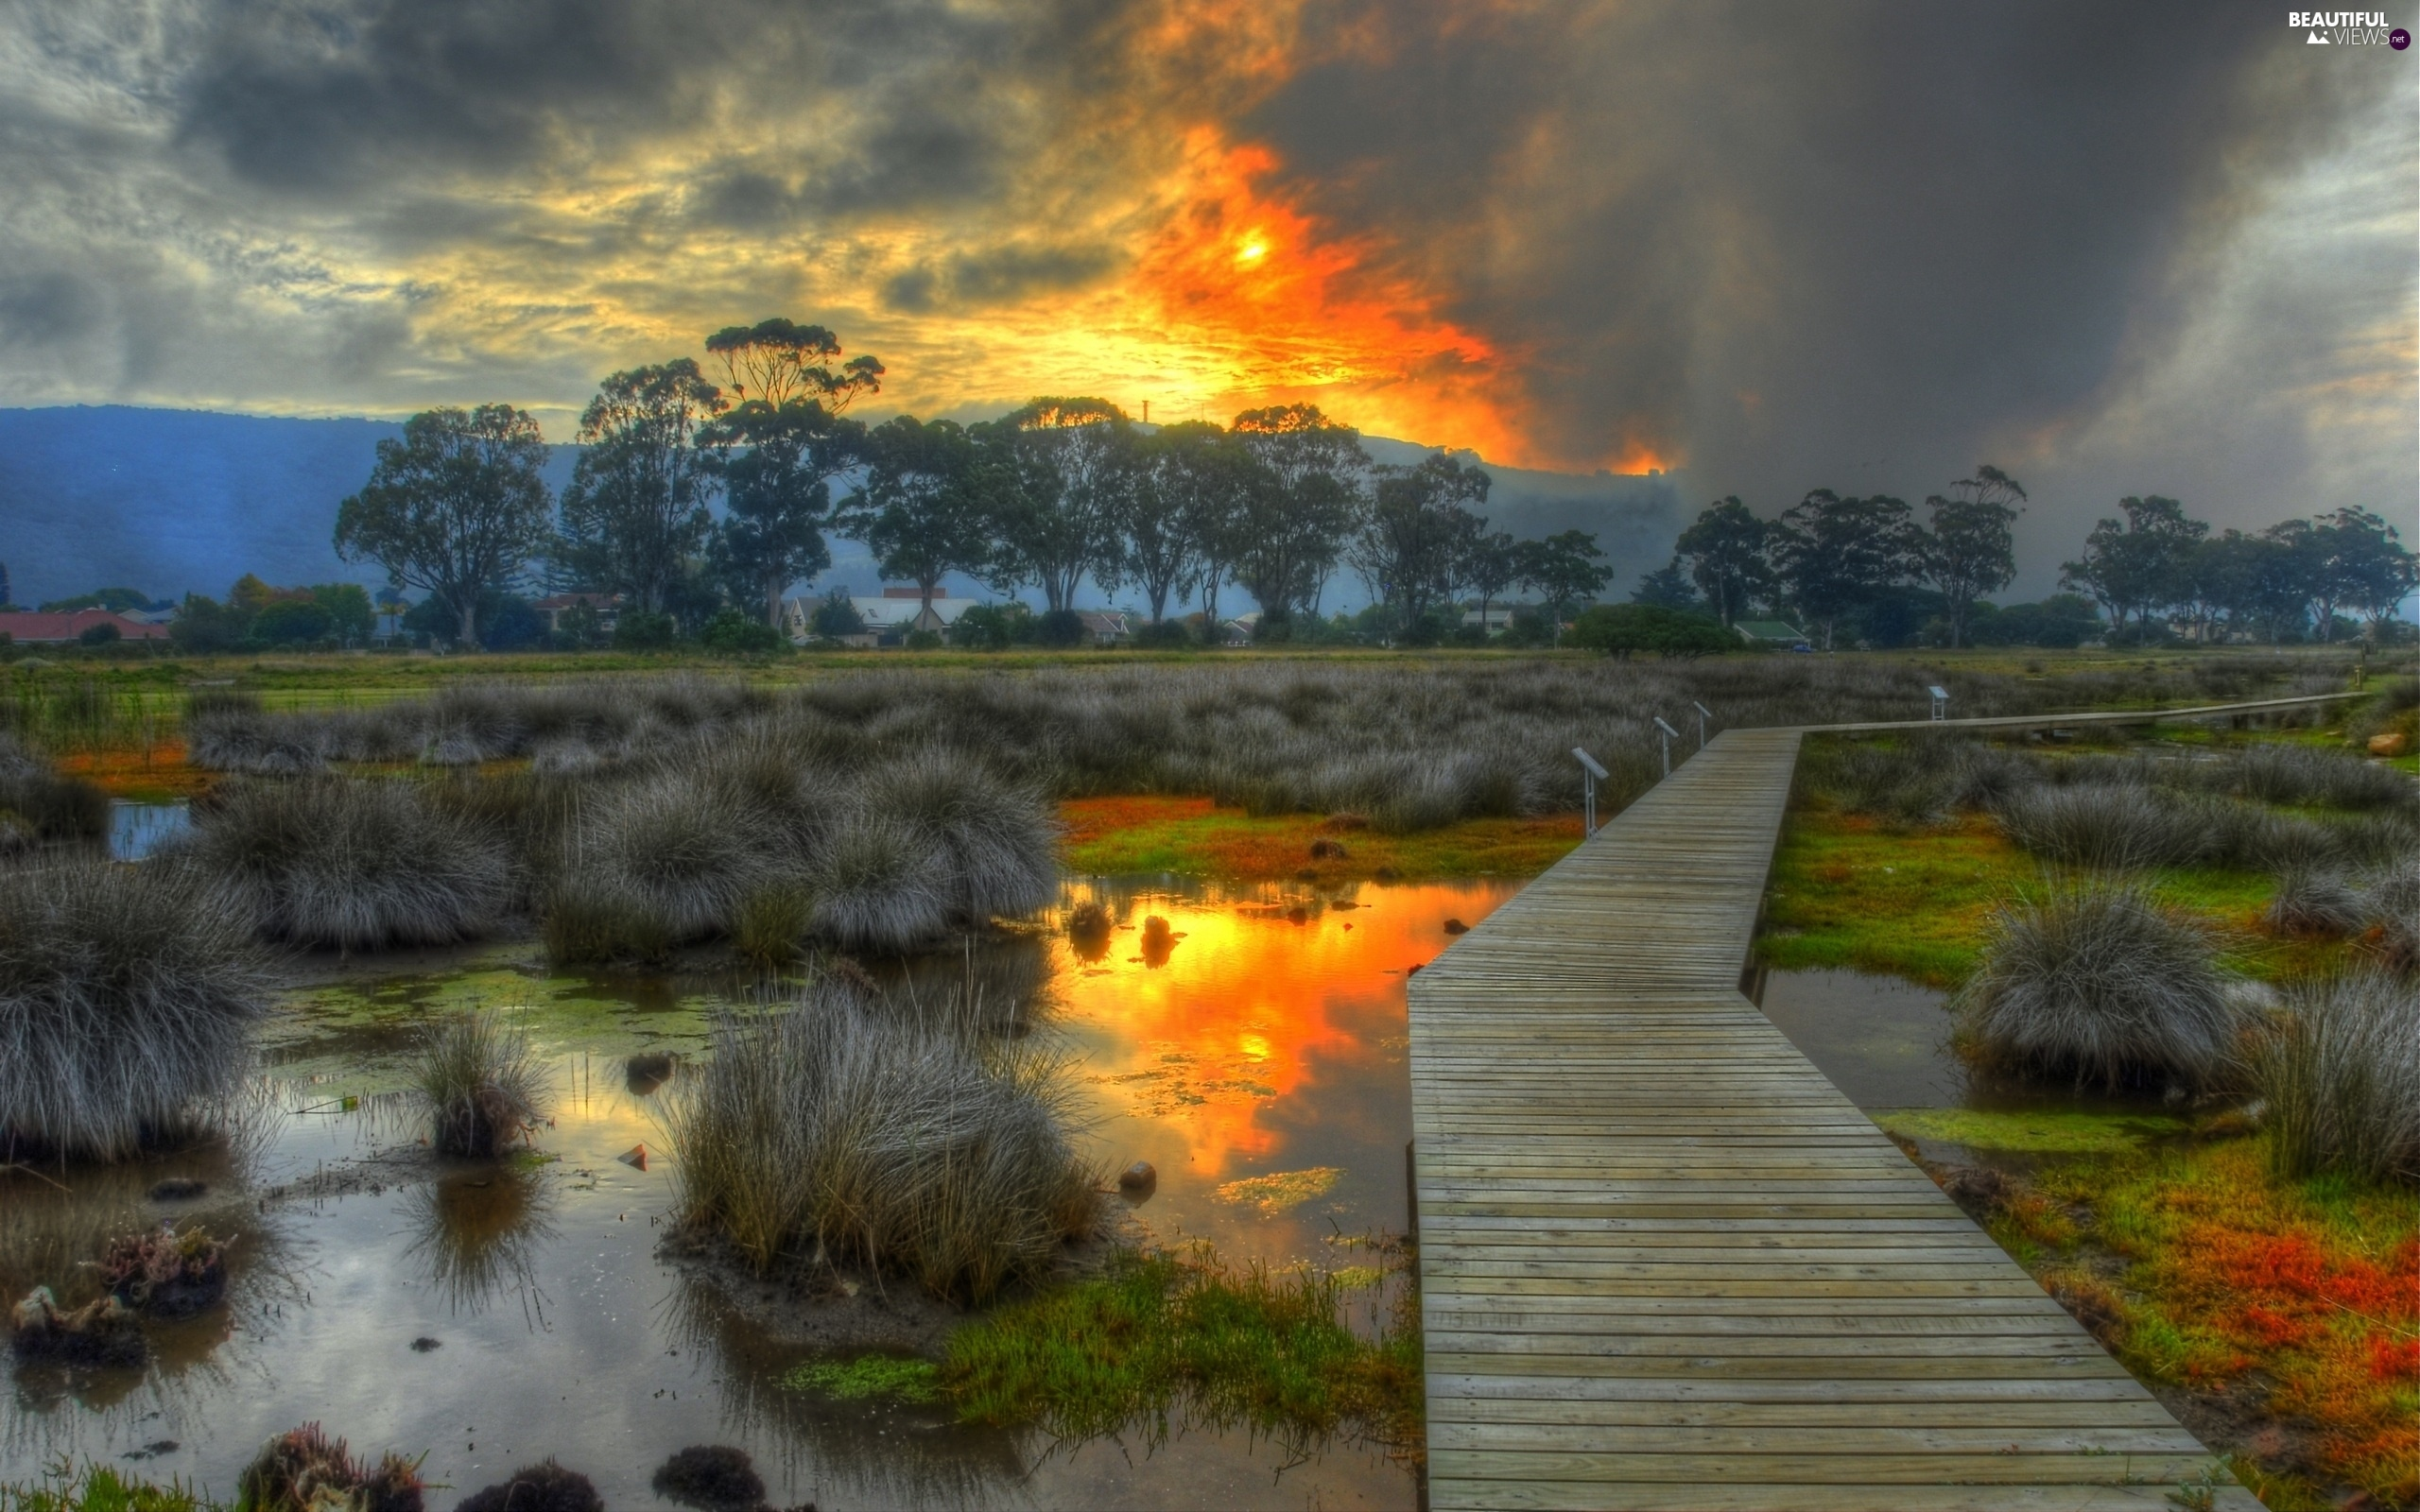 The setting, sun, by, swamp, footbridge